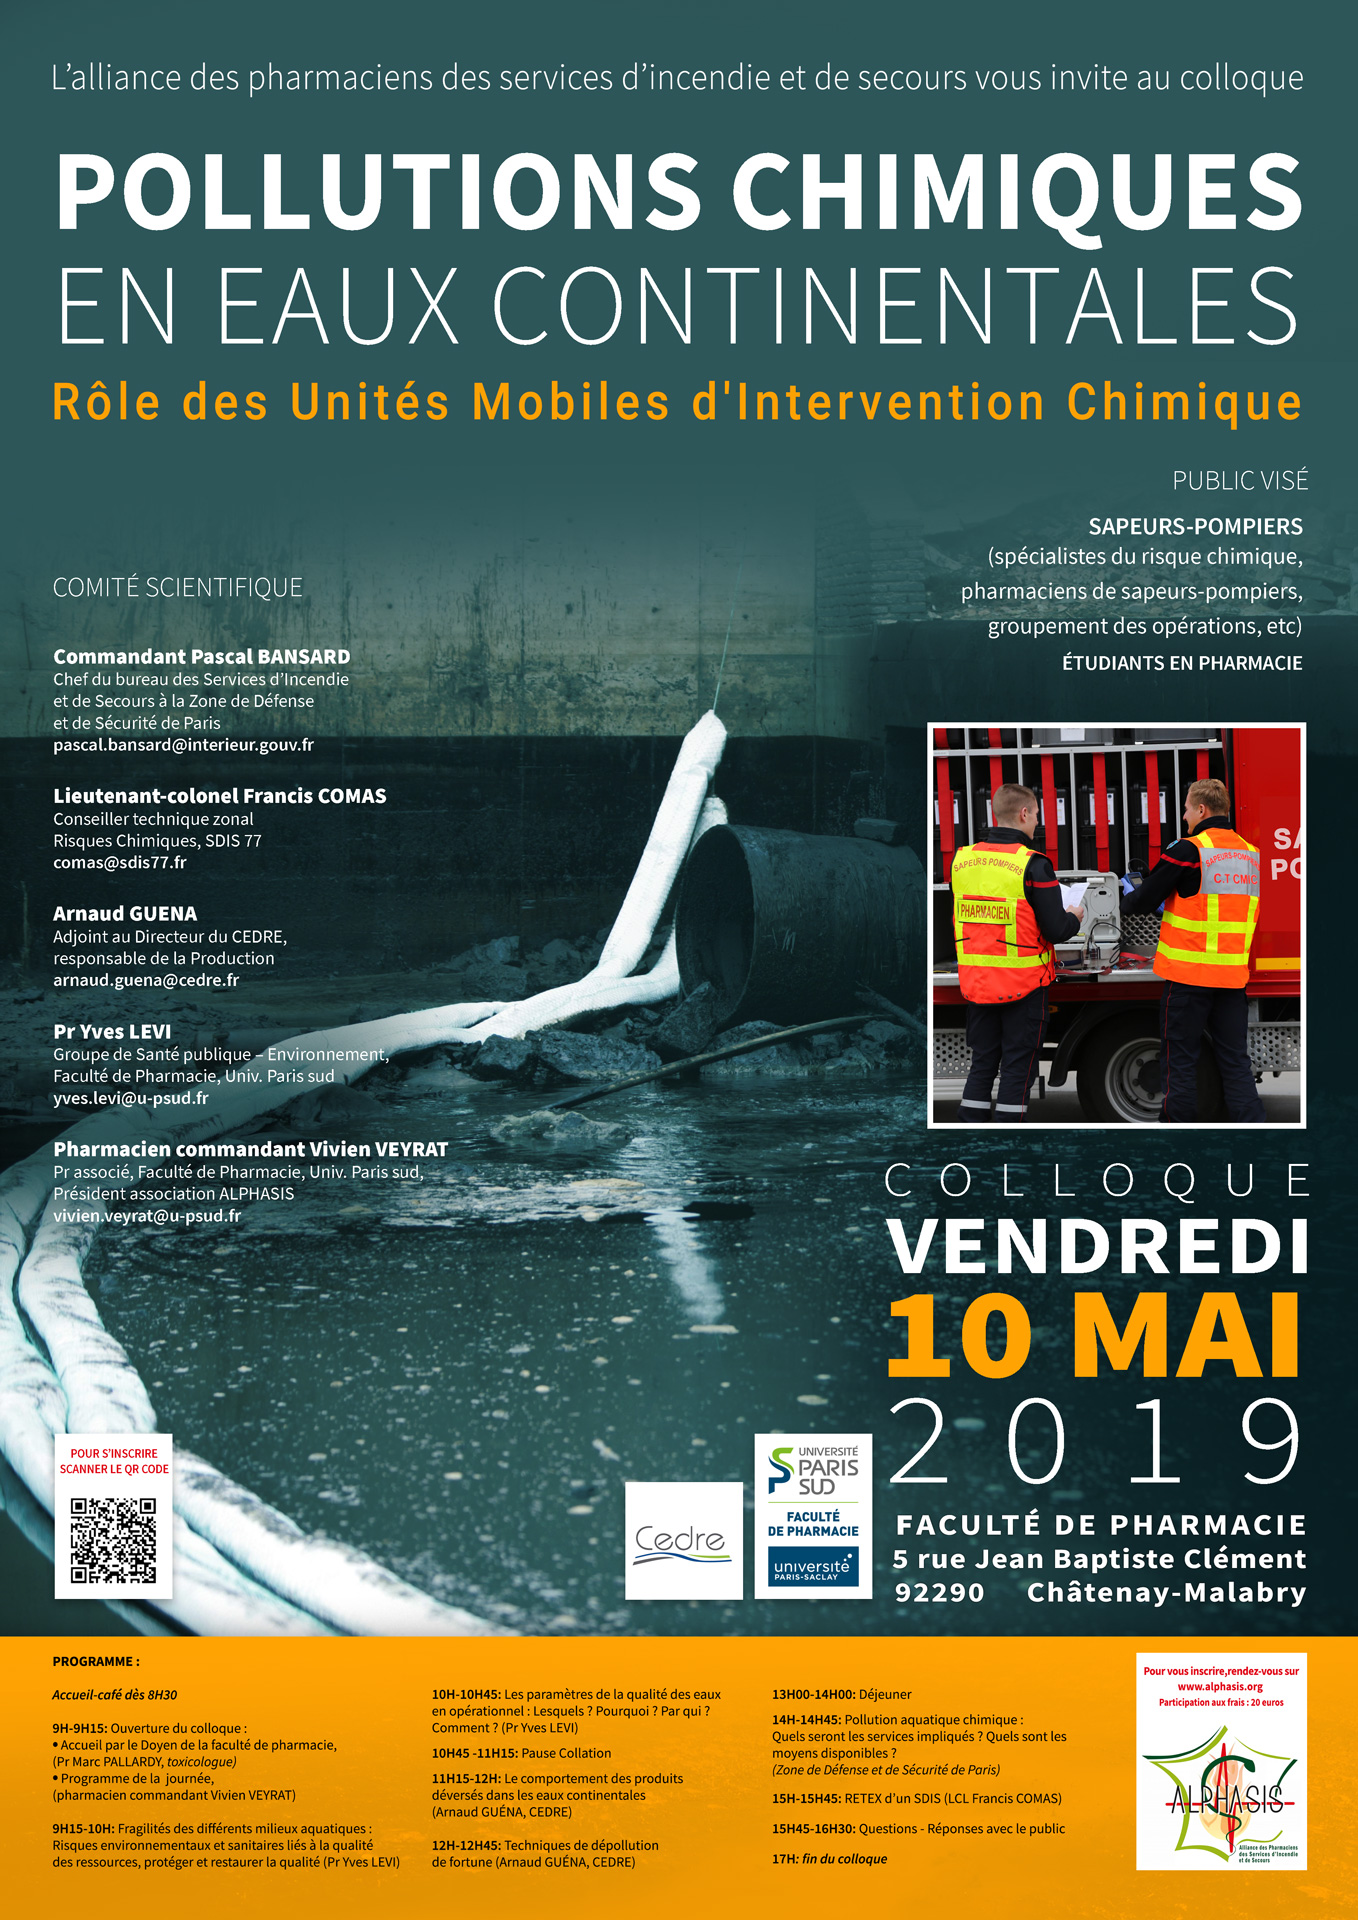 Retour sur le colloque du 10 mai 2019 : Pollutions chimiques en eaux continentales